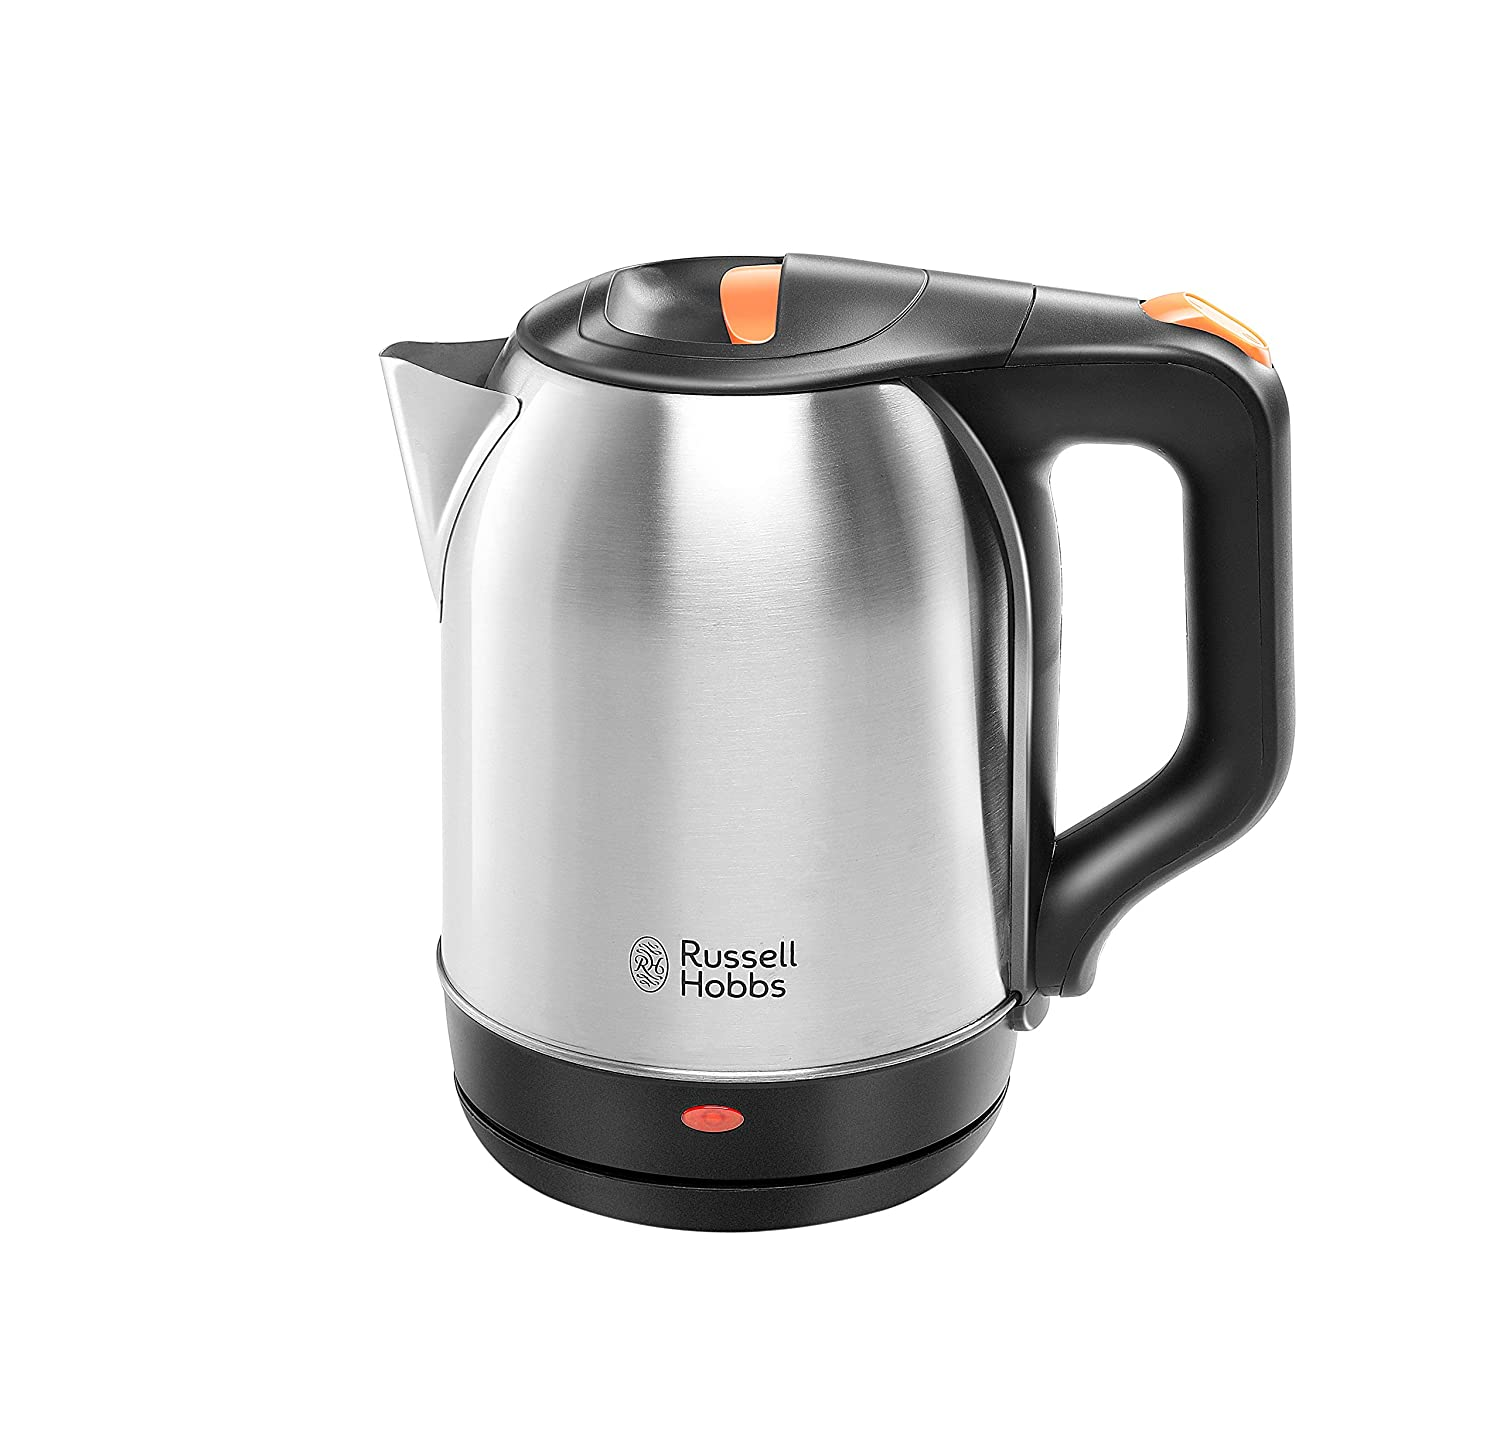 Multipurpose electric kettle for home